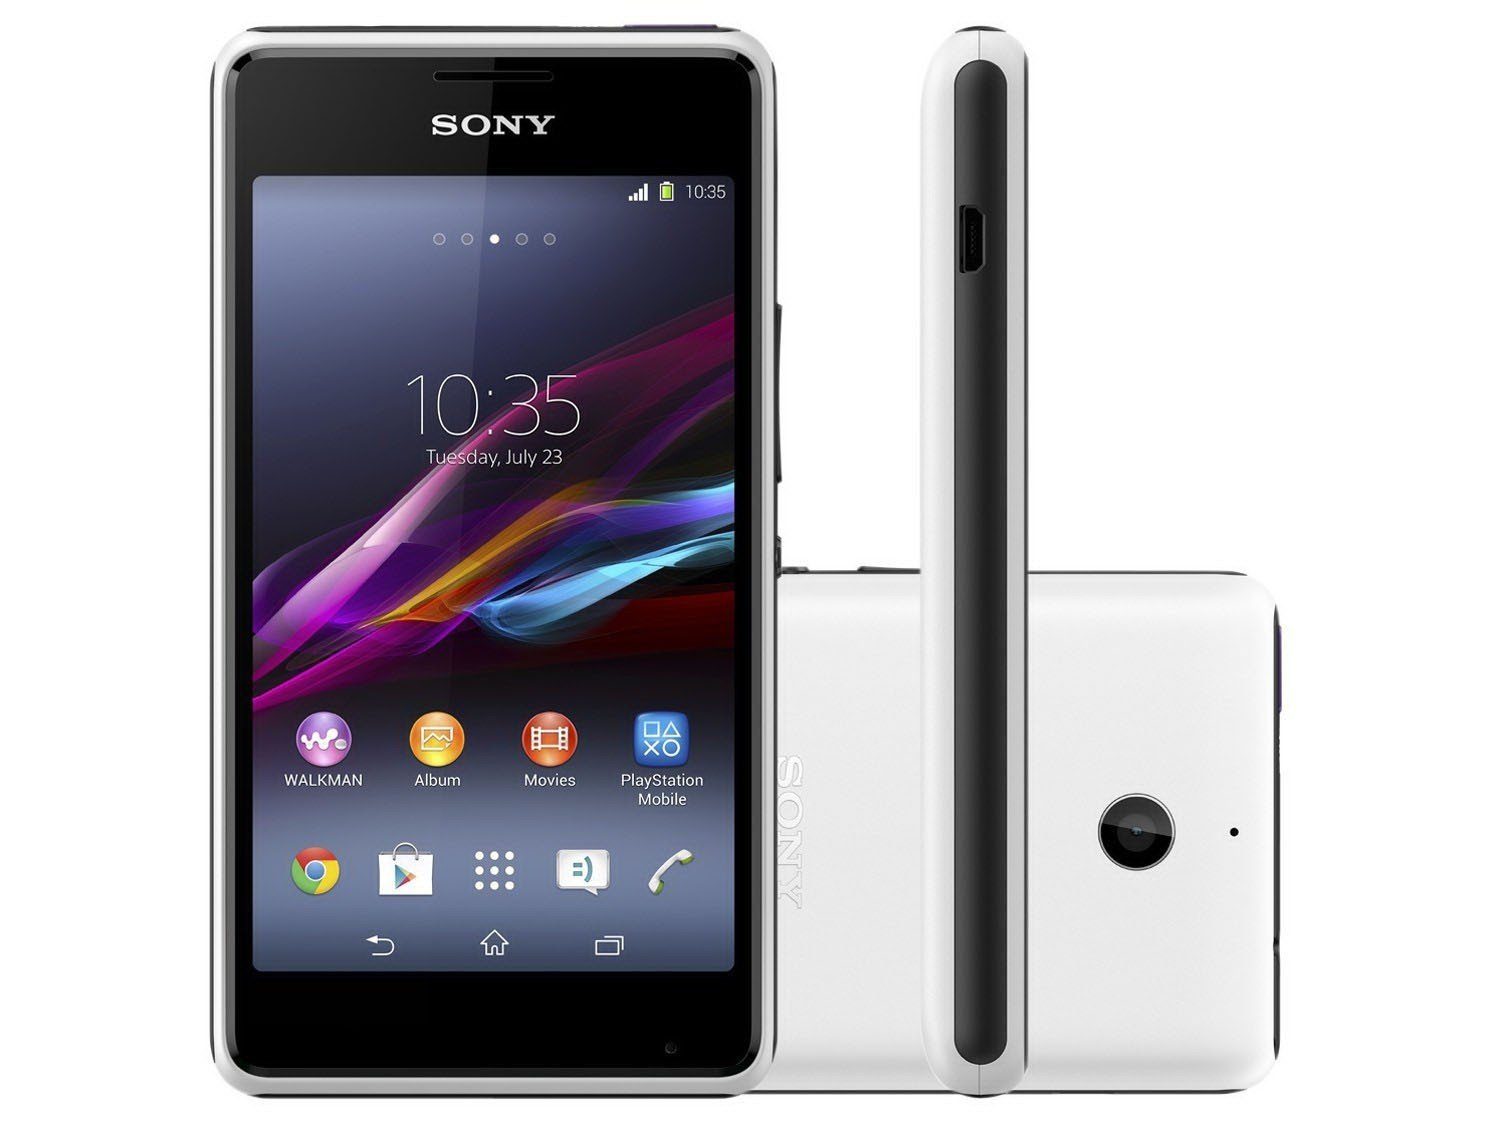 smartphone-sony-xperia-e1-dual-chip-3g-android-4.3-cam.-3mp-tela-4-proc.-dual-core-wi-fi-tv-digital